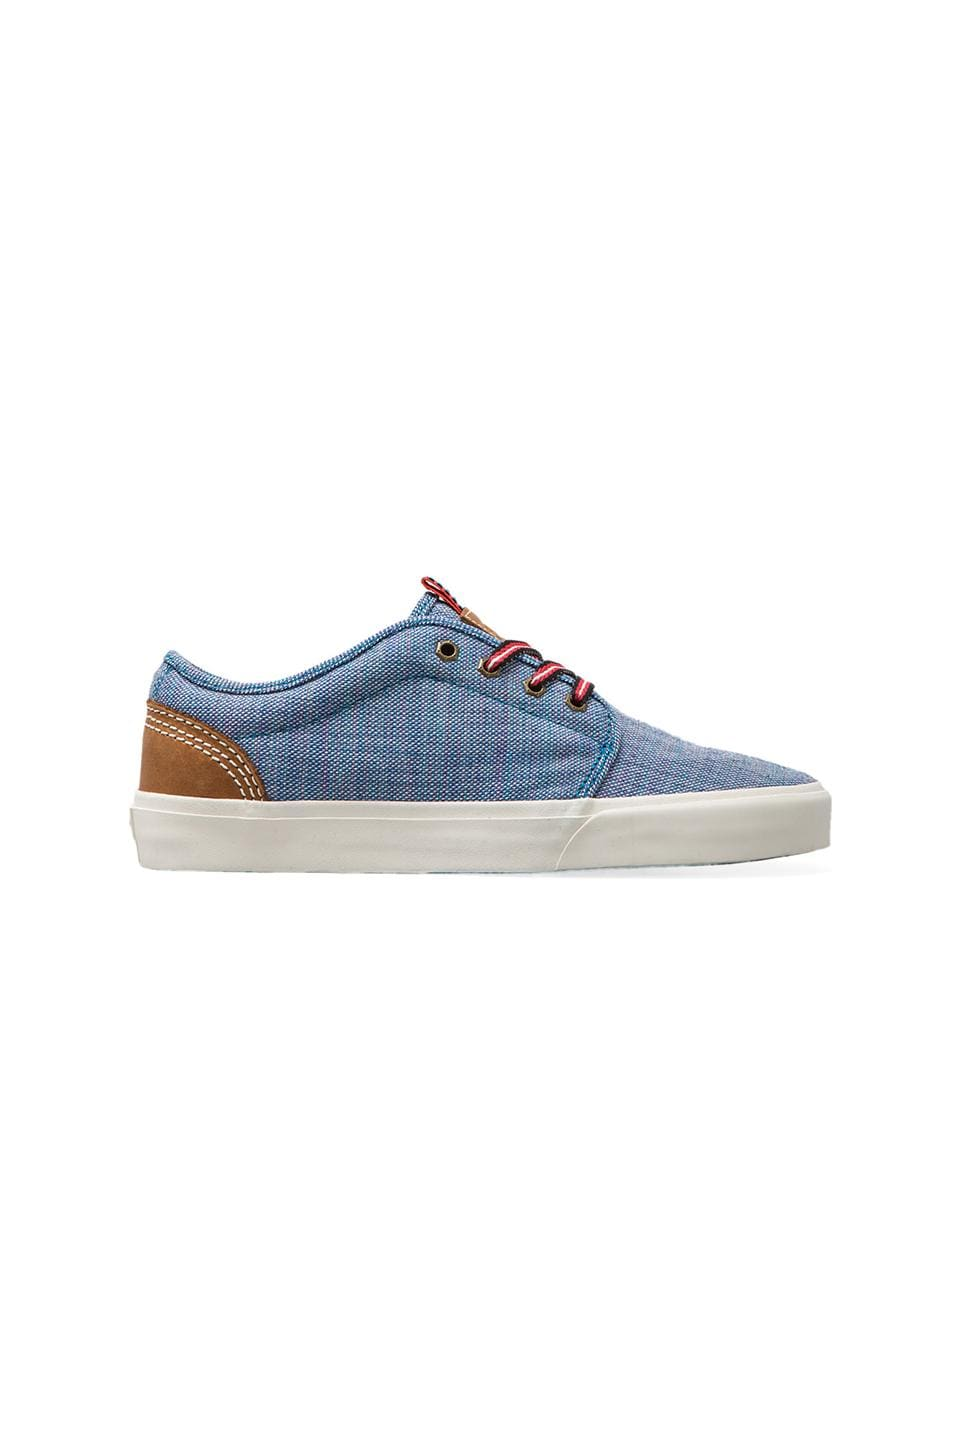 Vans California 106 Vulcanized in Turkish Tile